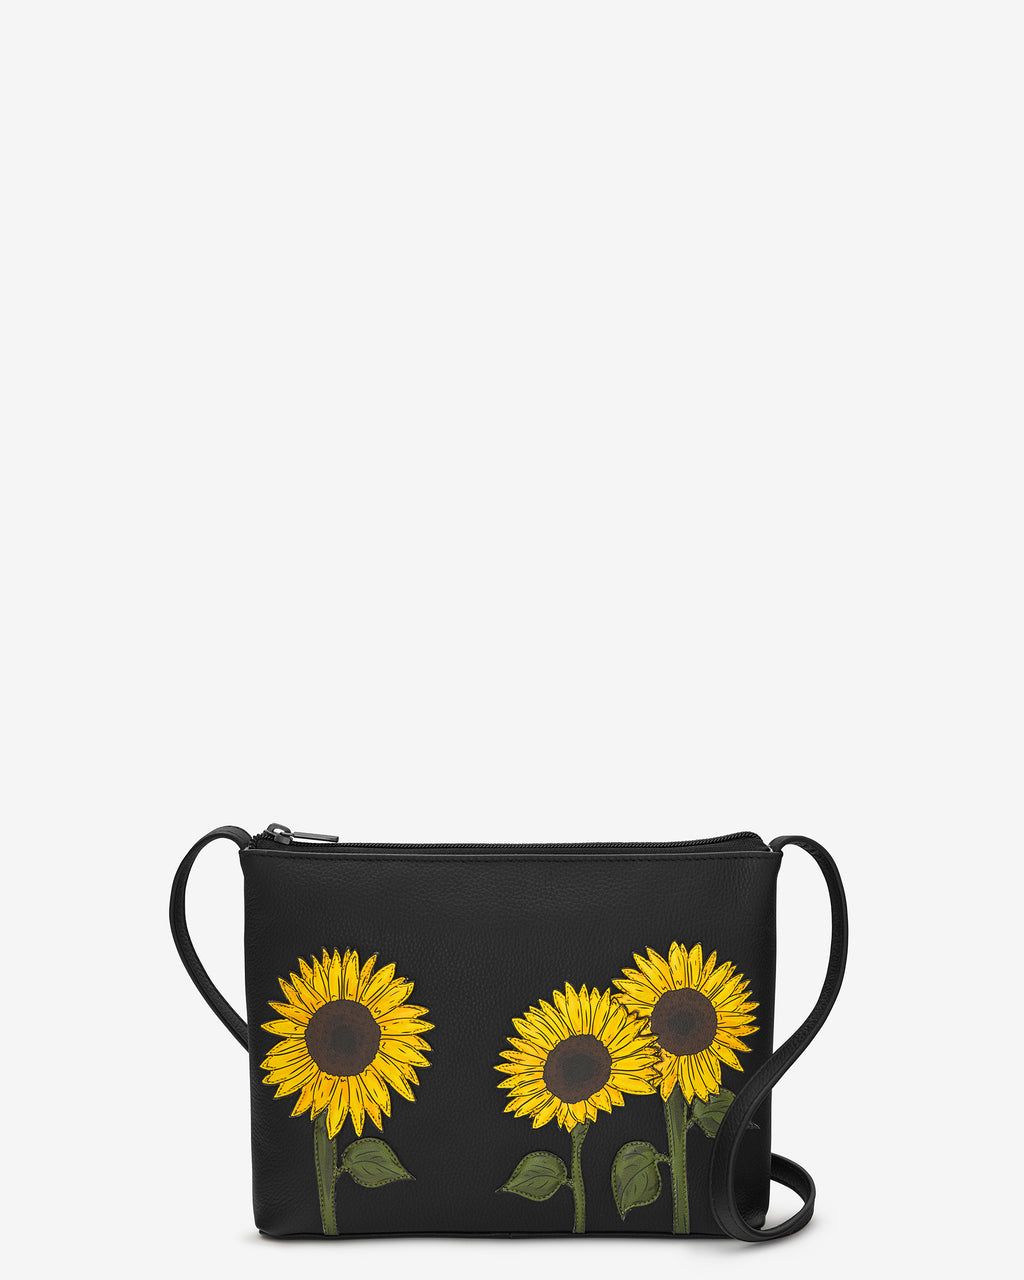 Sunflowers Parker Leather Cross Body Bag